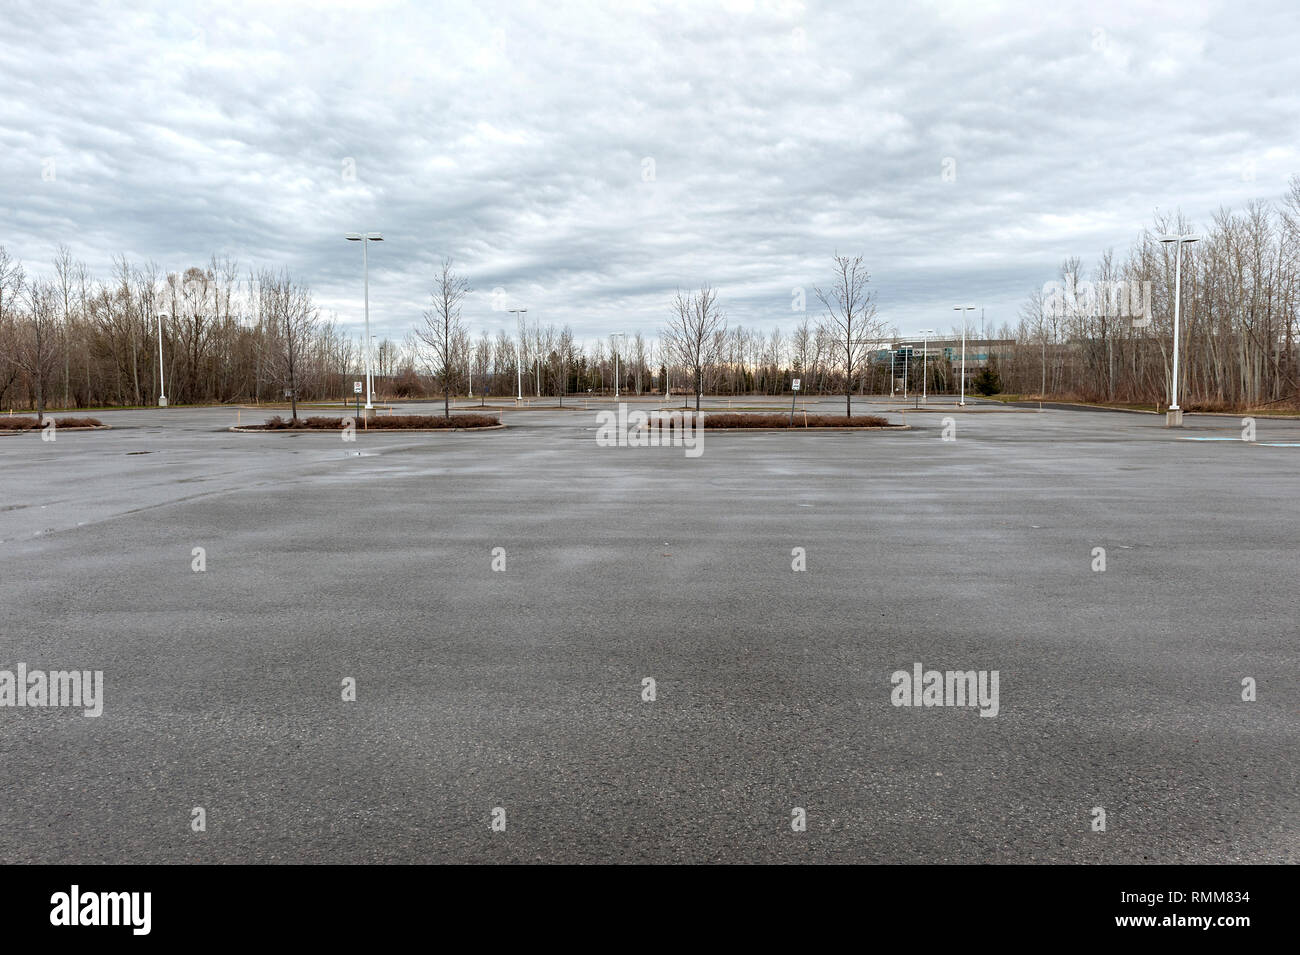 Low angle view of a large empty parking lot - Stock Image